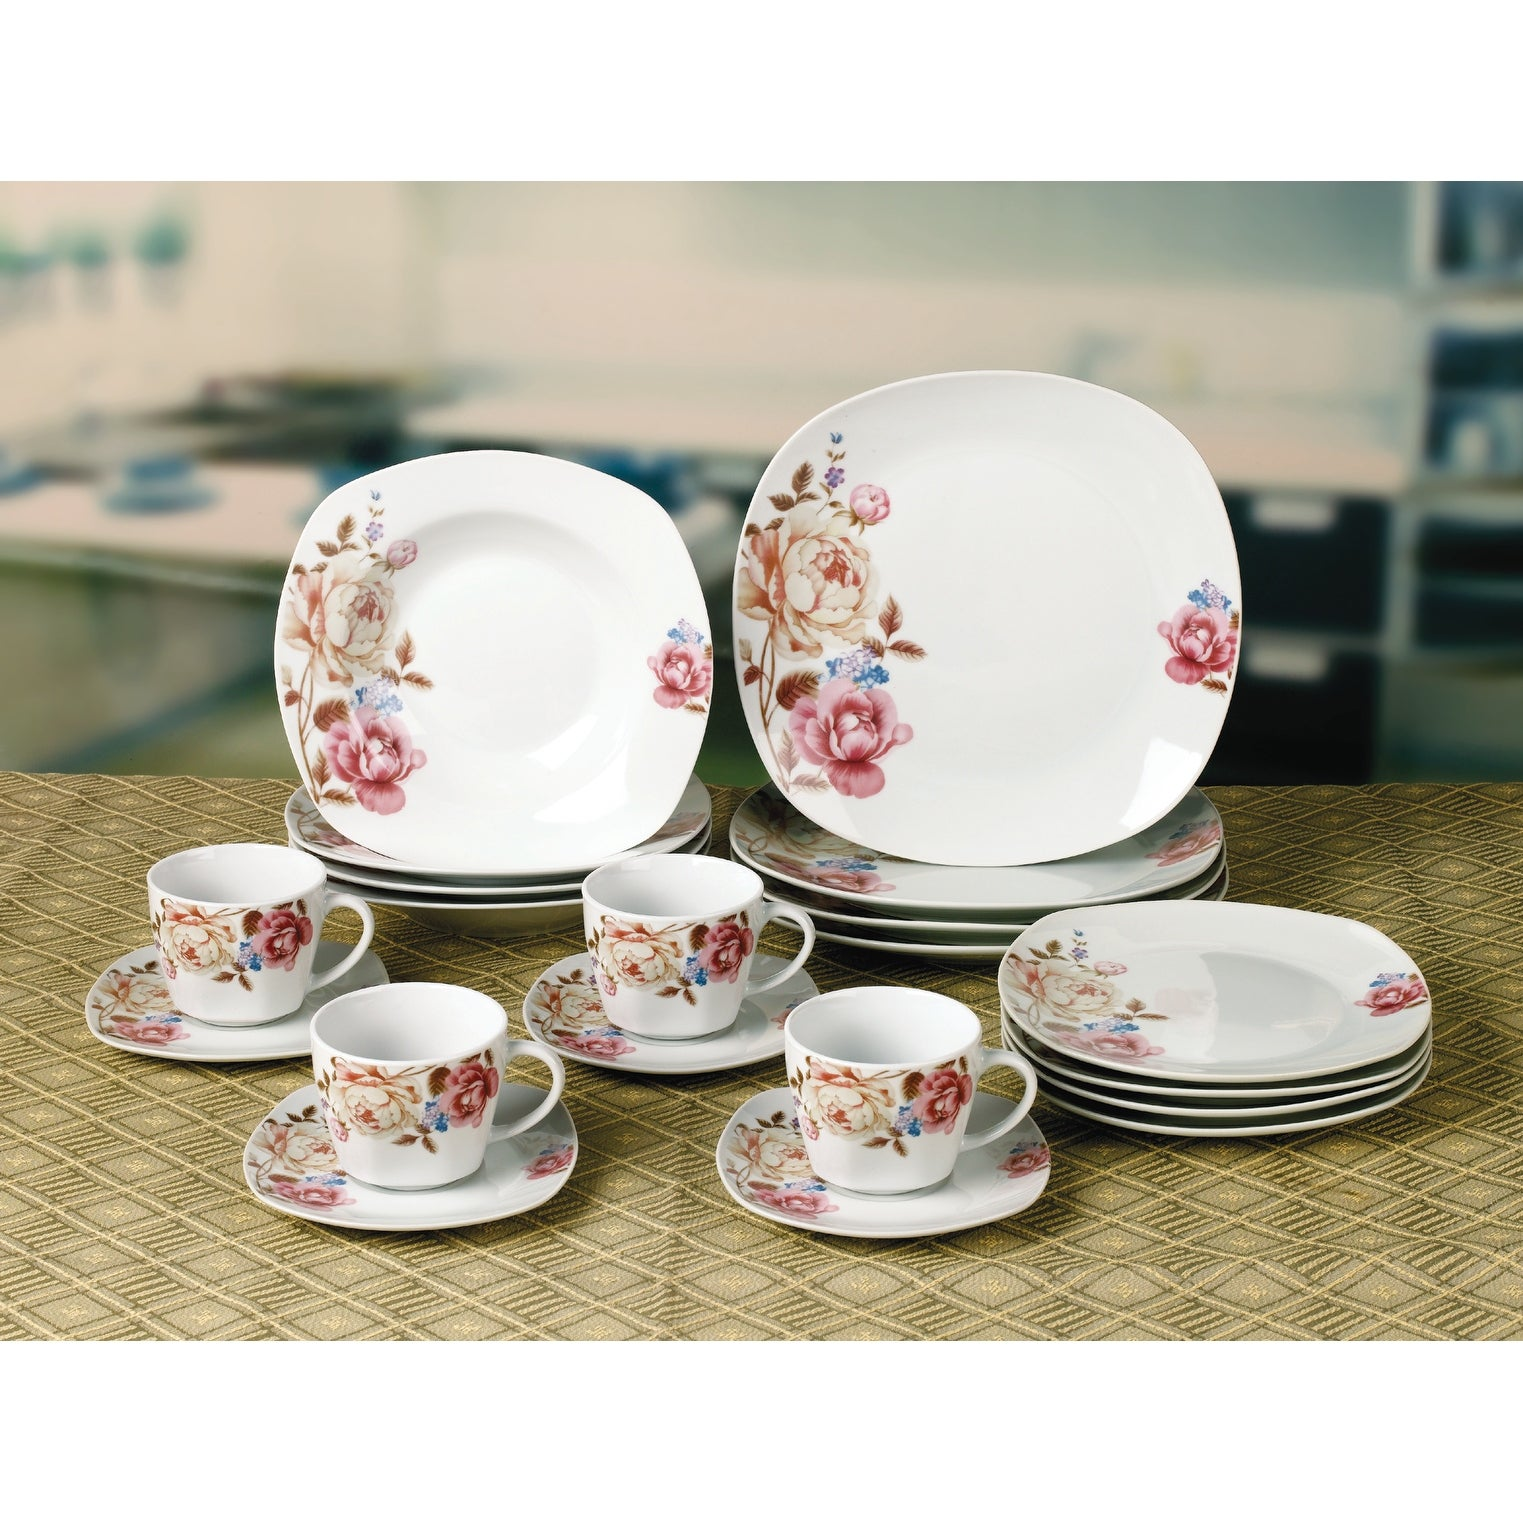 Porcelain 20 Piece Square Dinnerware Set Service For 4 Overstock 32301425